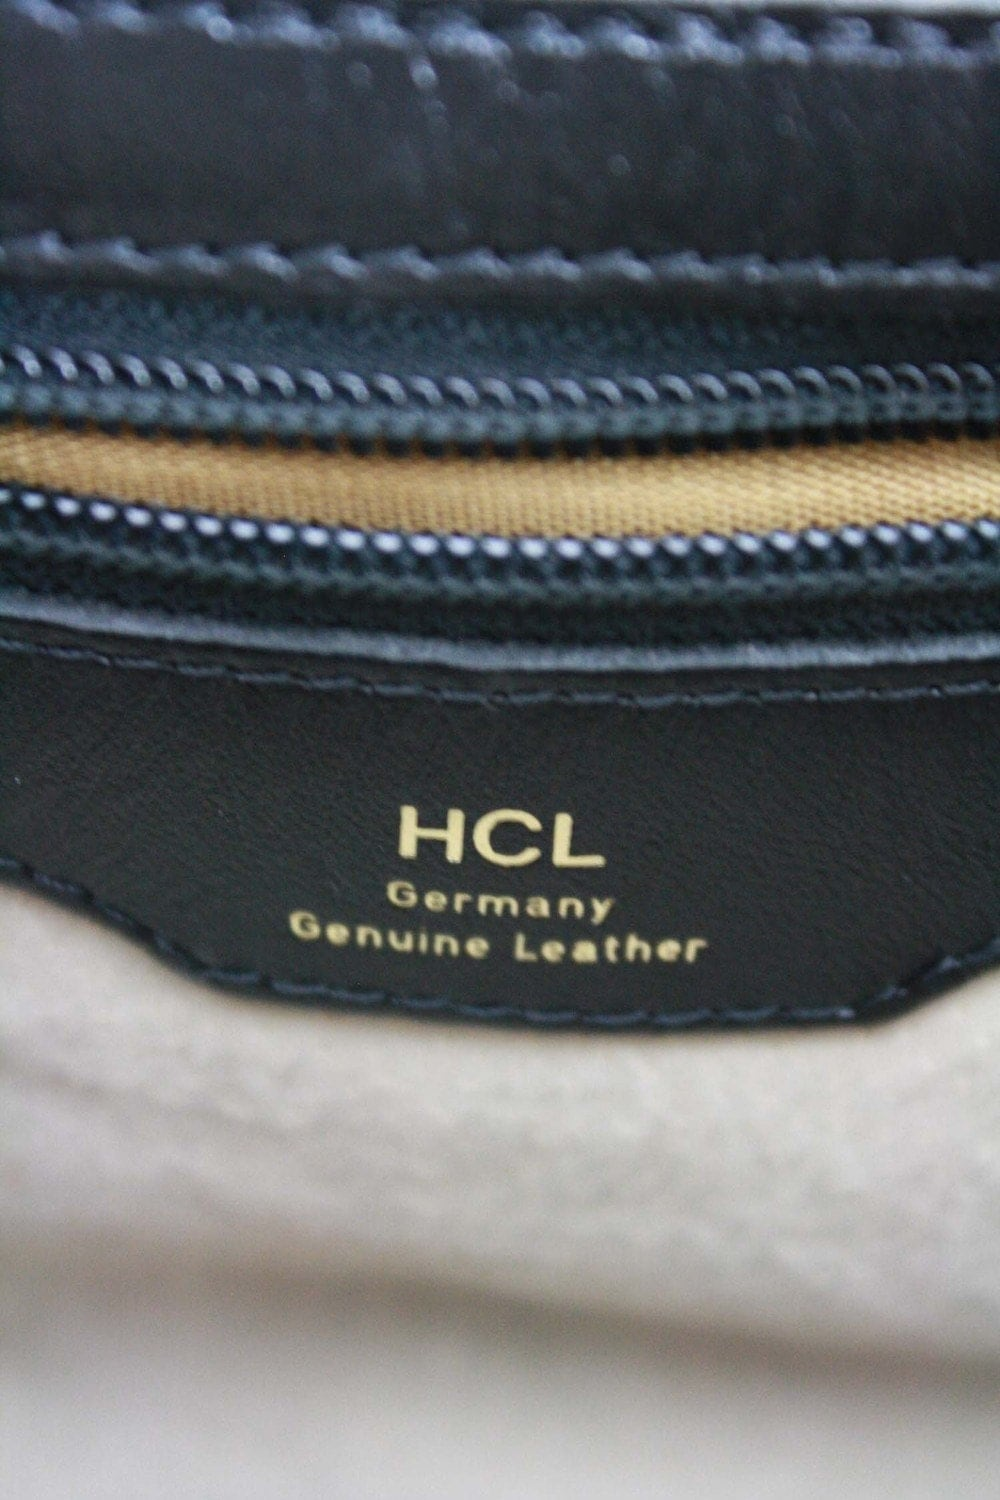 Hcl handcrafted leather goods - Item Details